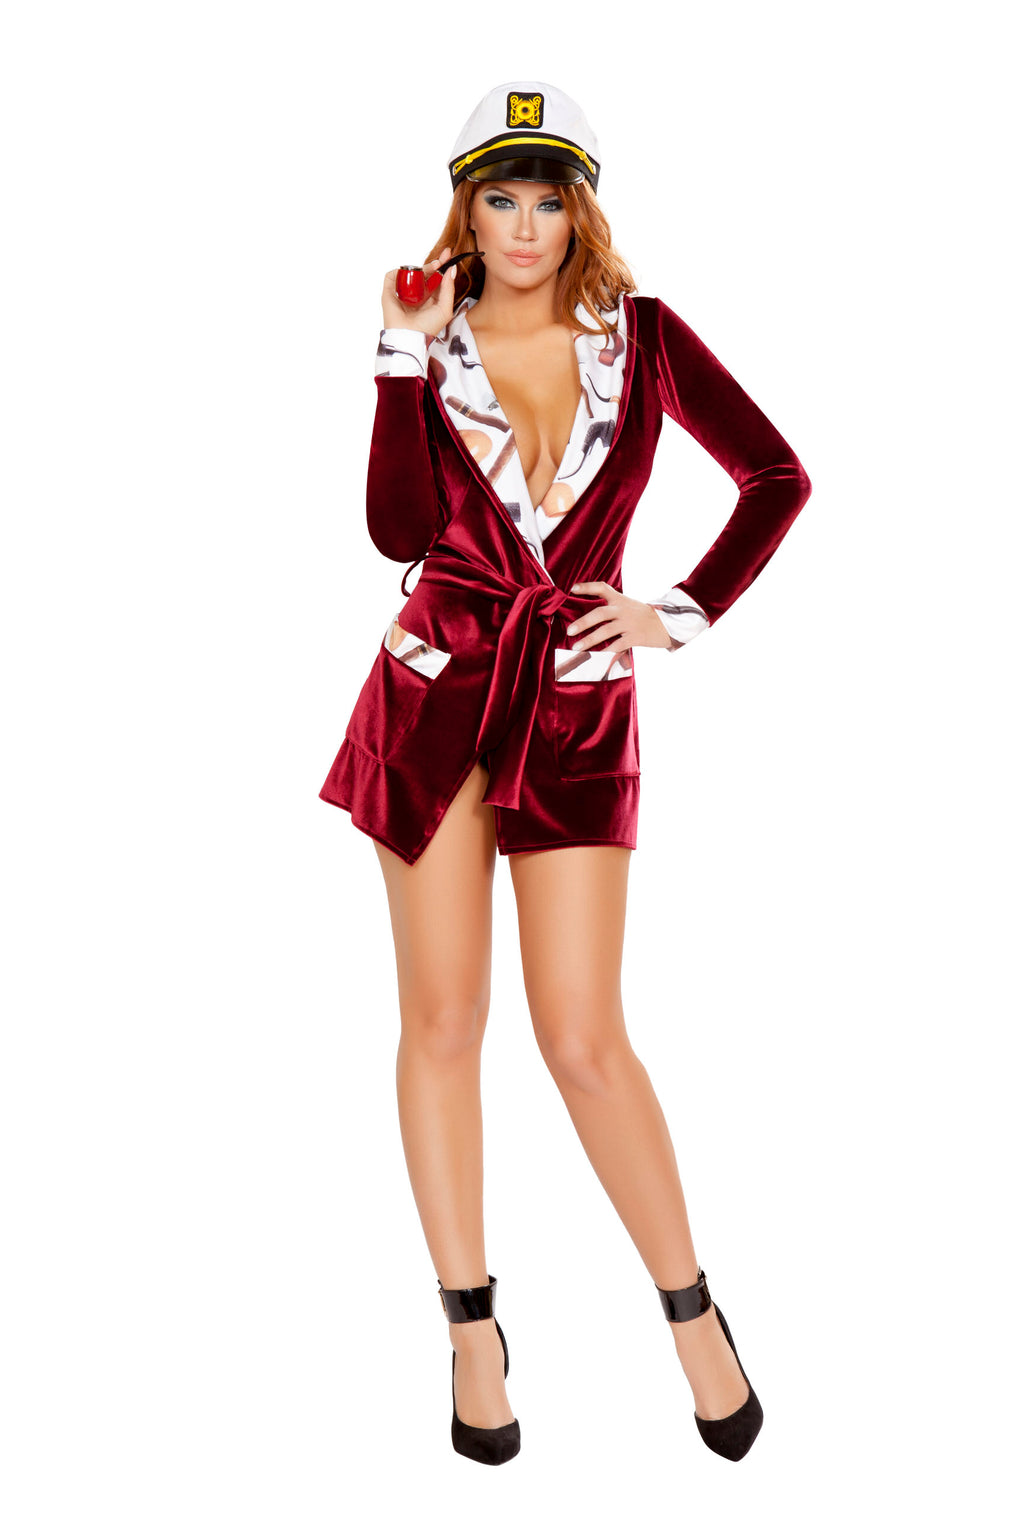 3-Piece-Miss-Hugh-Hefner-Robe-w/-Sailor-Hat-&-Pipe-Party-Costume-